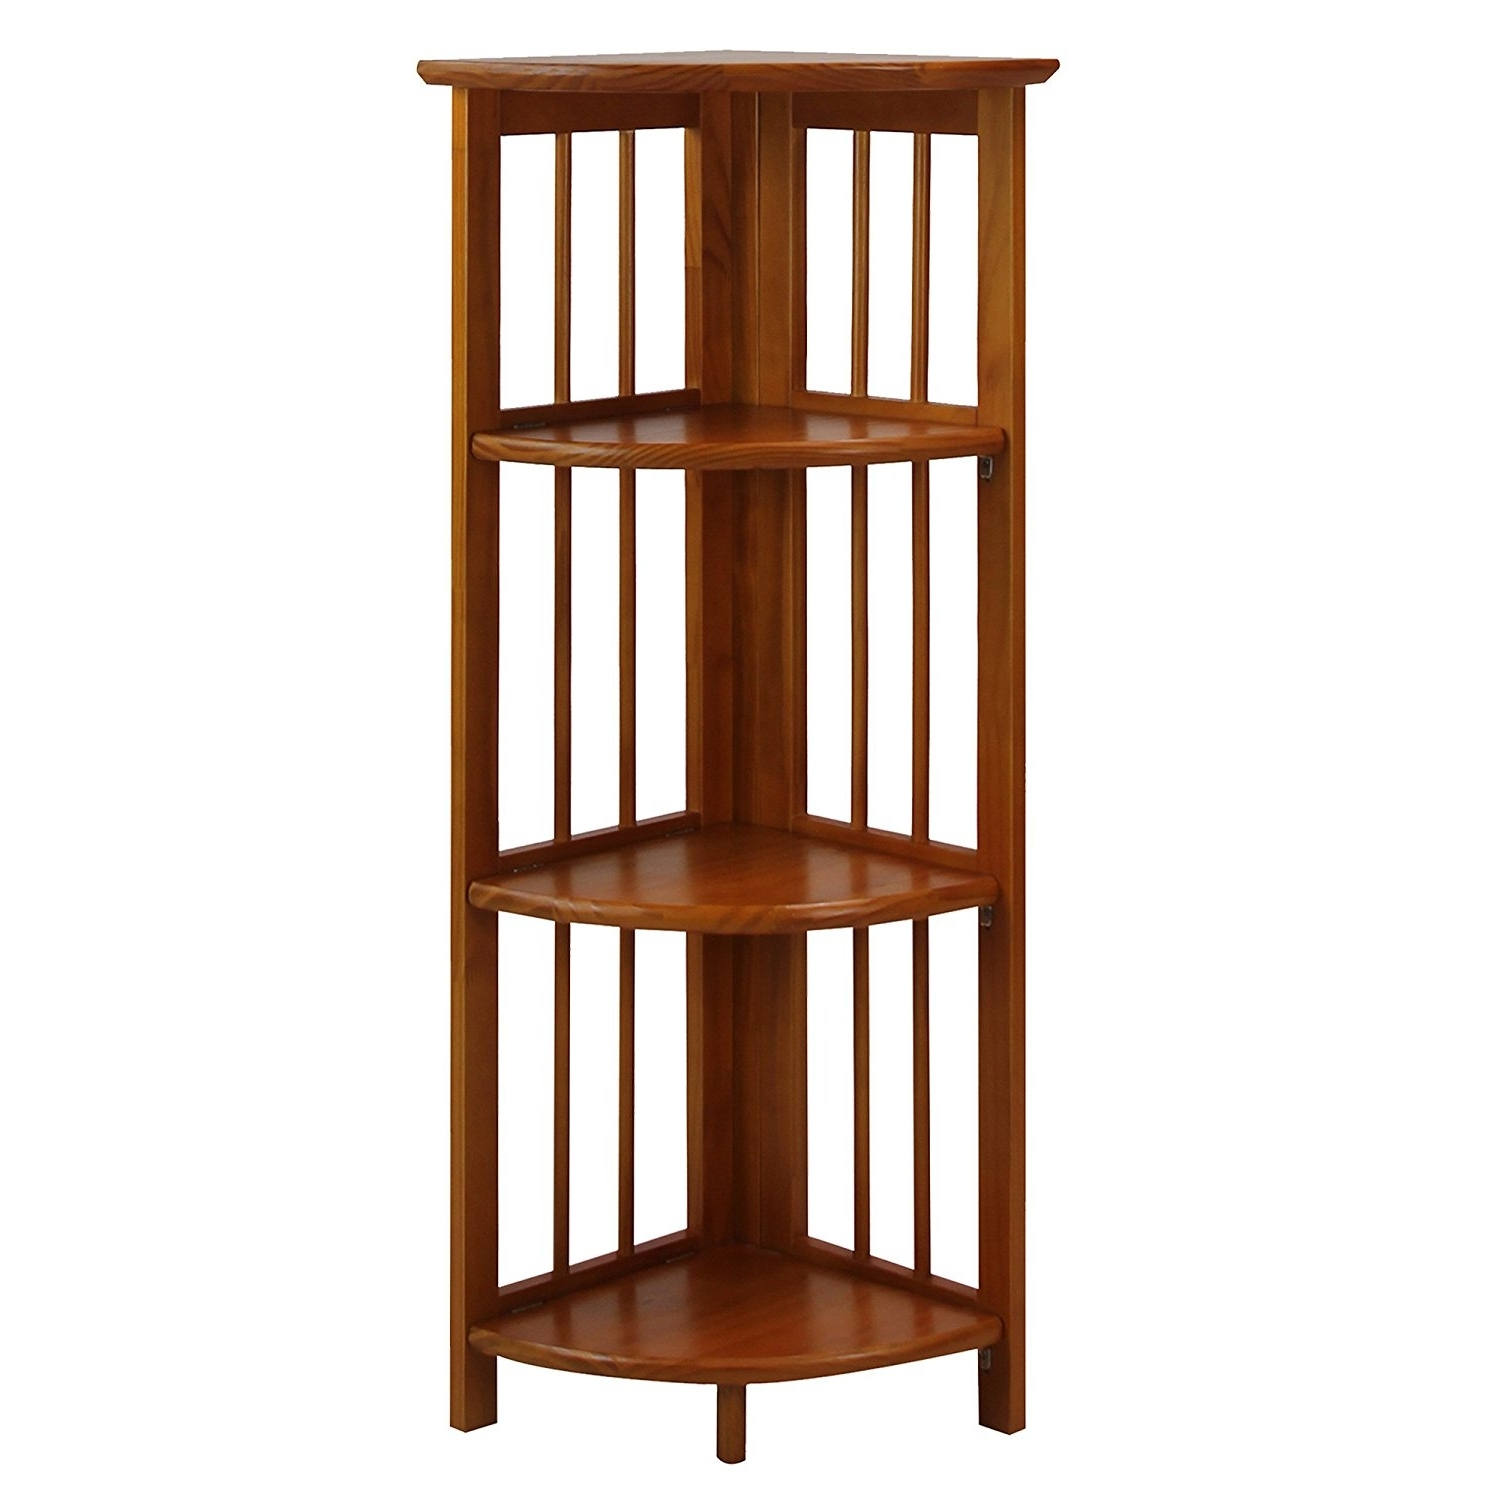 Corner Oak Bookcases Intended For Latest Amazon: Casual Home 315 15 4 Shelf Corner Folding Bookcase (View 7 of 15)